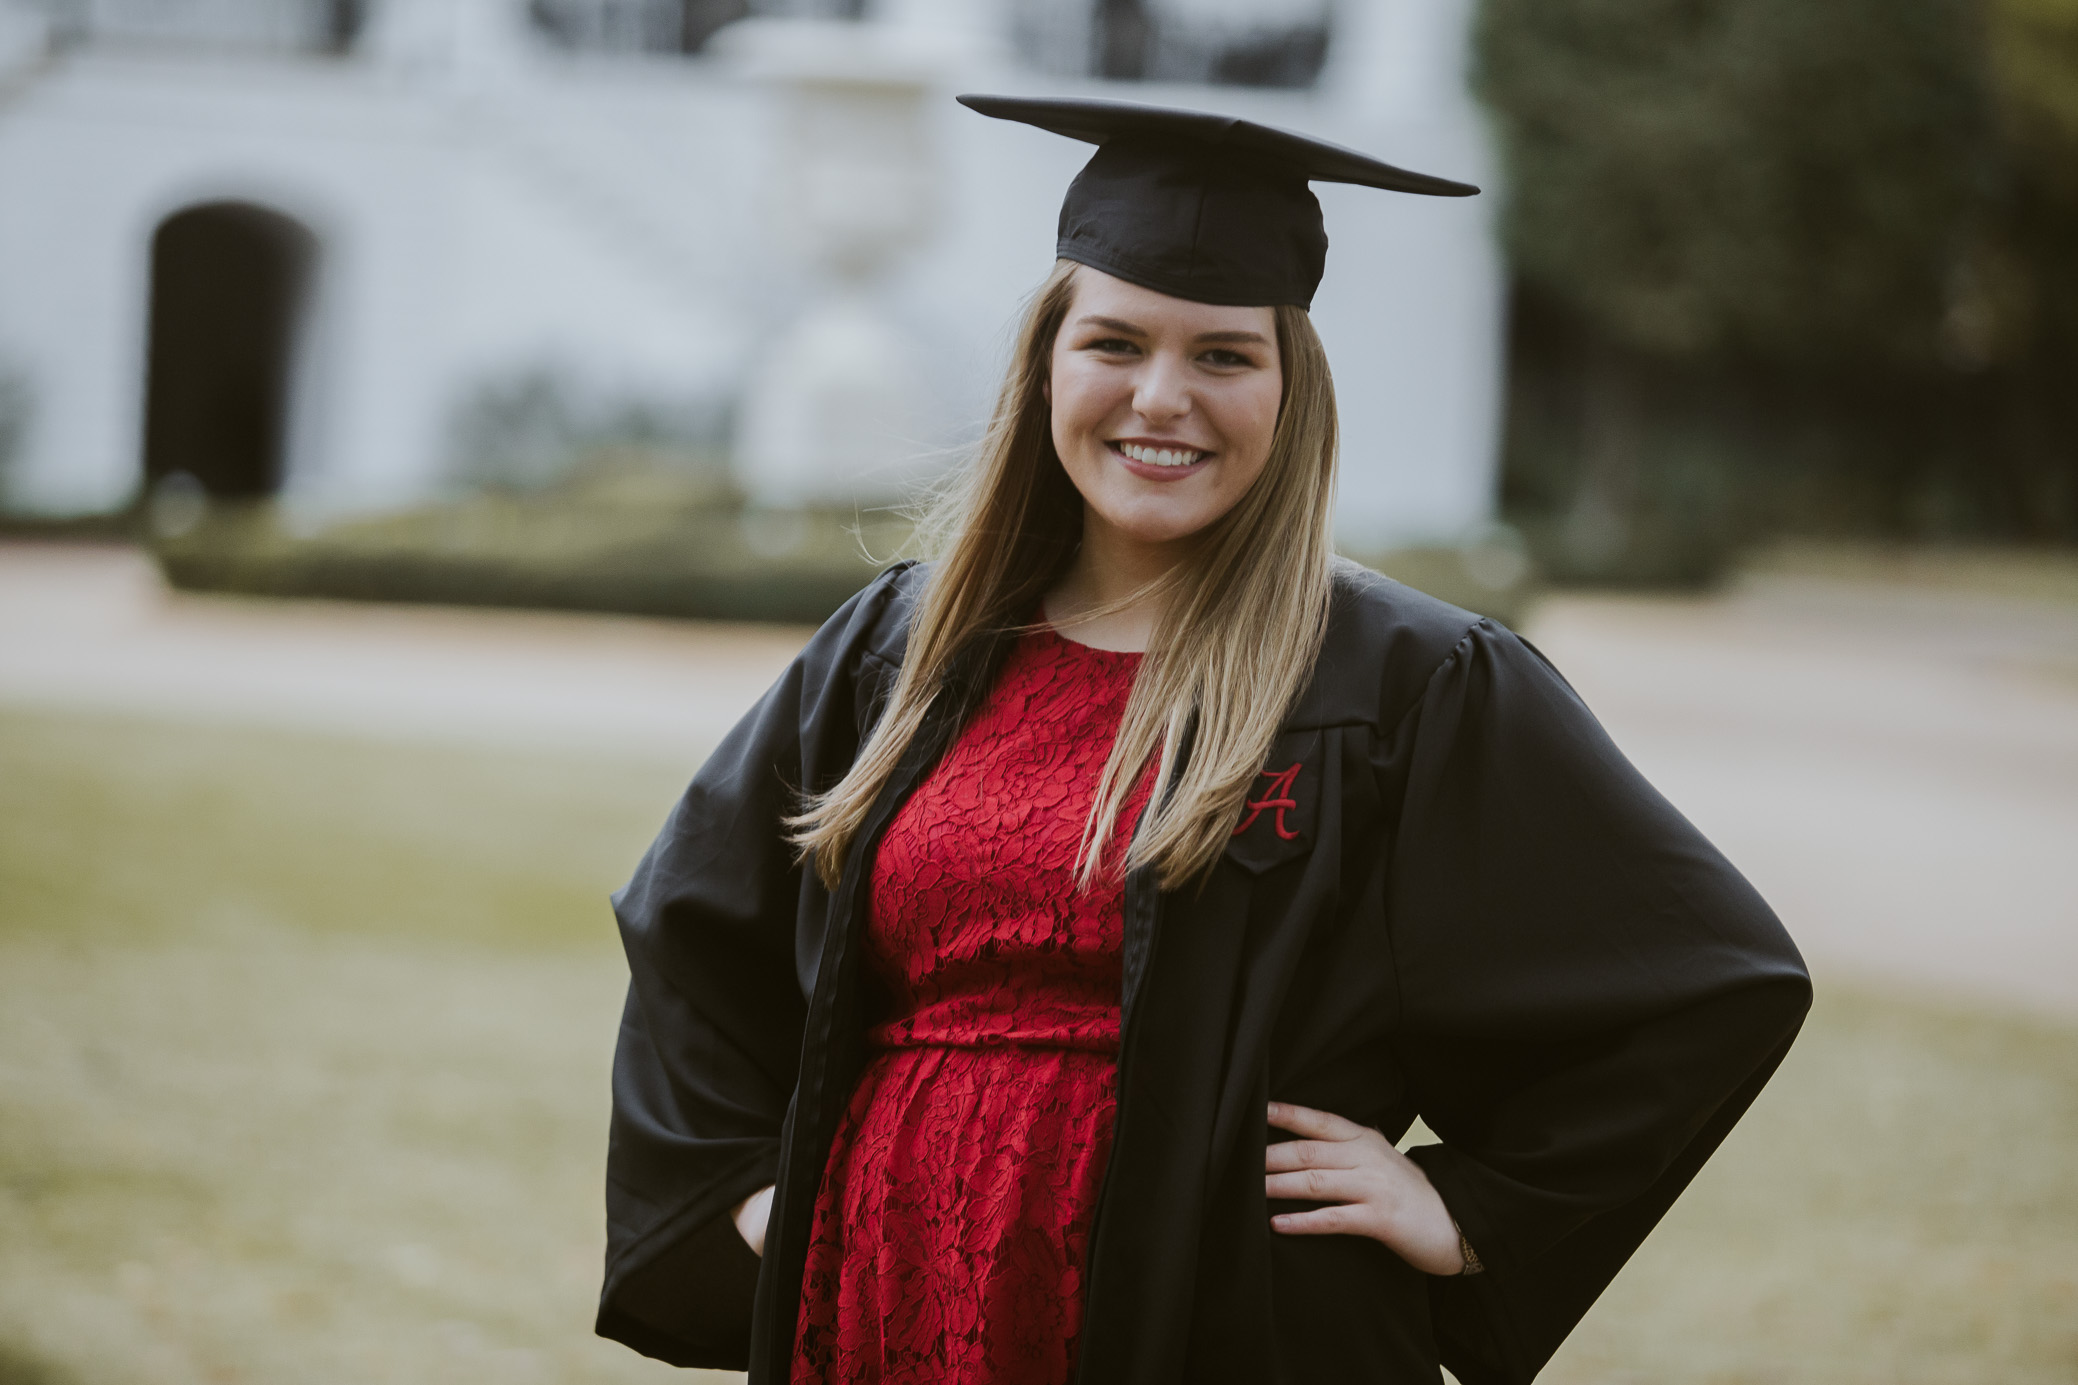 University of Alabama graduation portraits taken during the fall semester in Tuscaloosa, Alabama on November 13th, 2018 by David A. Smith of DSmithImages Wedding Photography, Portraits, and Events in the Birmingham, Alabama area.